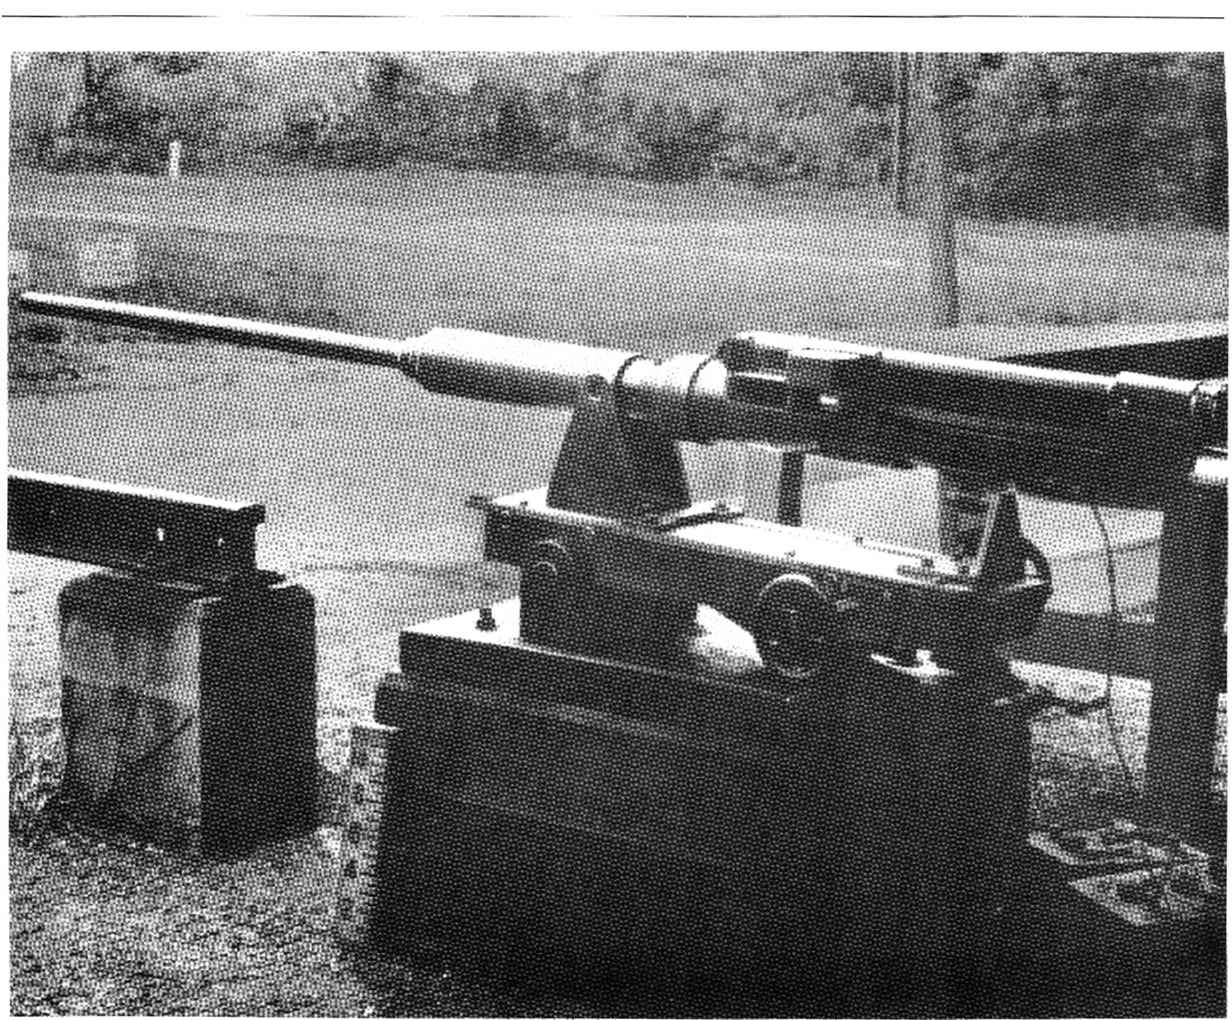 60 caliber machine gun